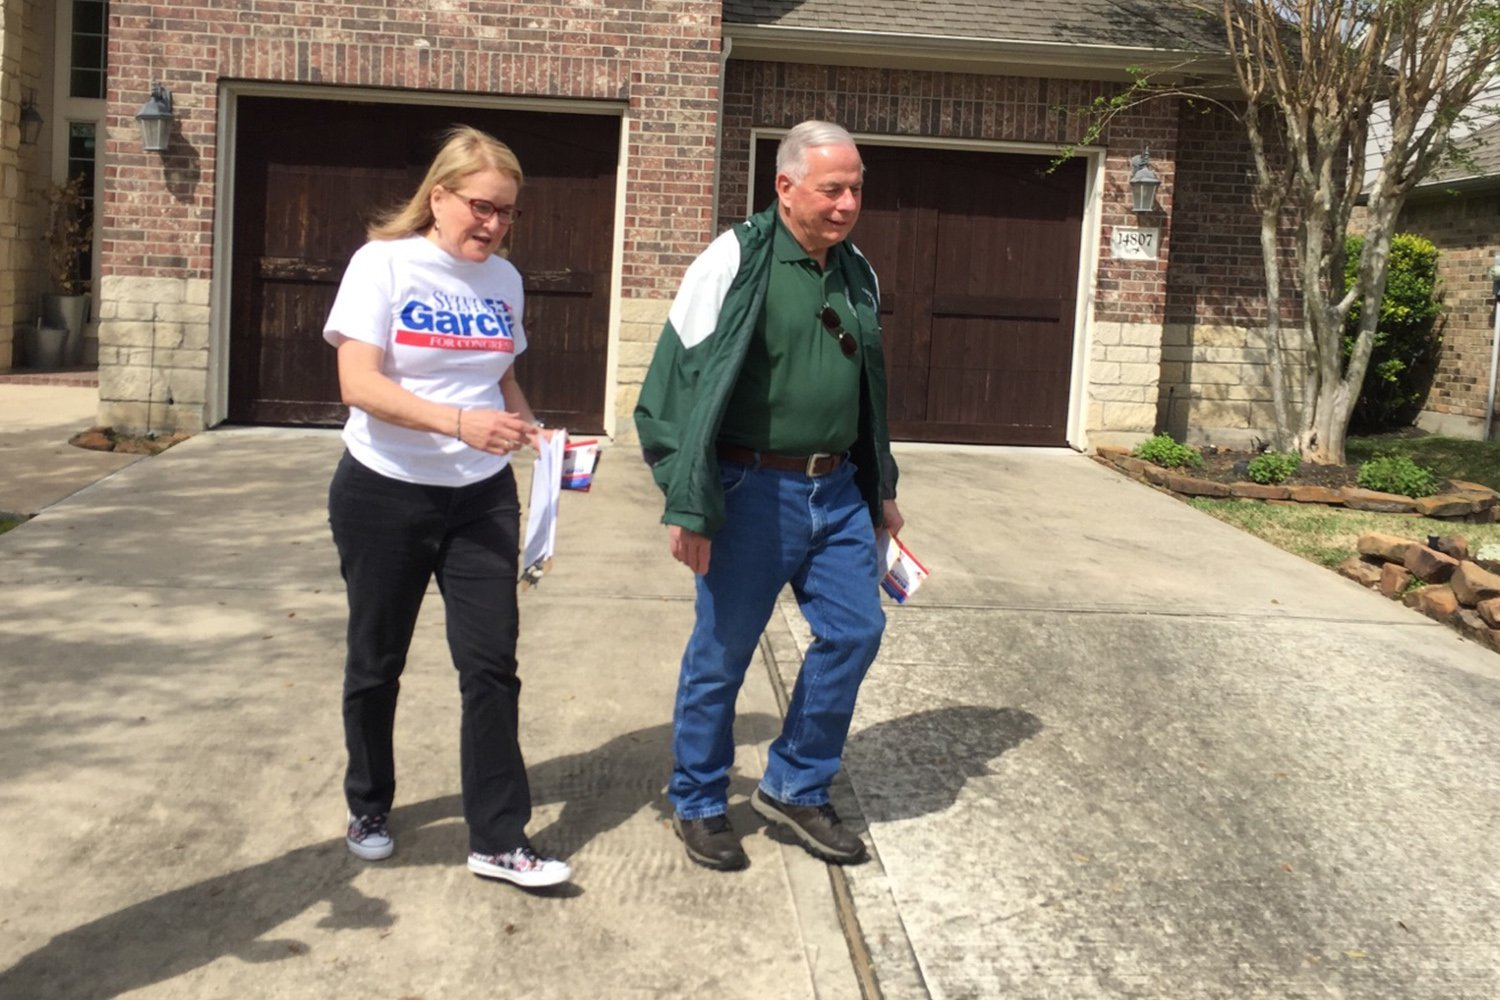 State Sen. Sylvia Garcia and U.S. Rep. Gene Green were knocking on doors in Humble for her congressional campaign on Saturday, March 3, 2018.  Abby Livingston/Texas Tribune